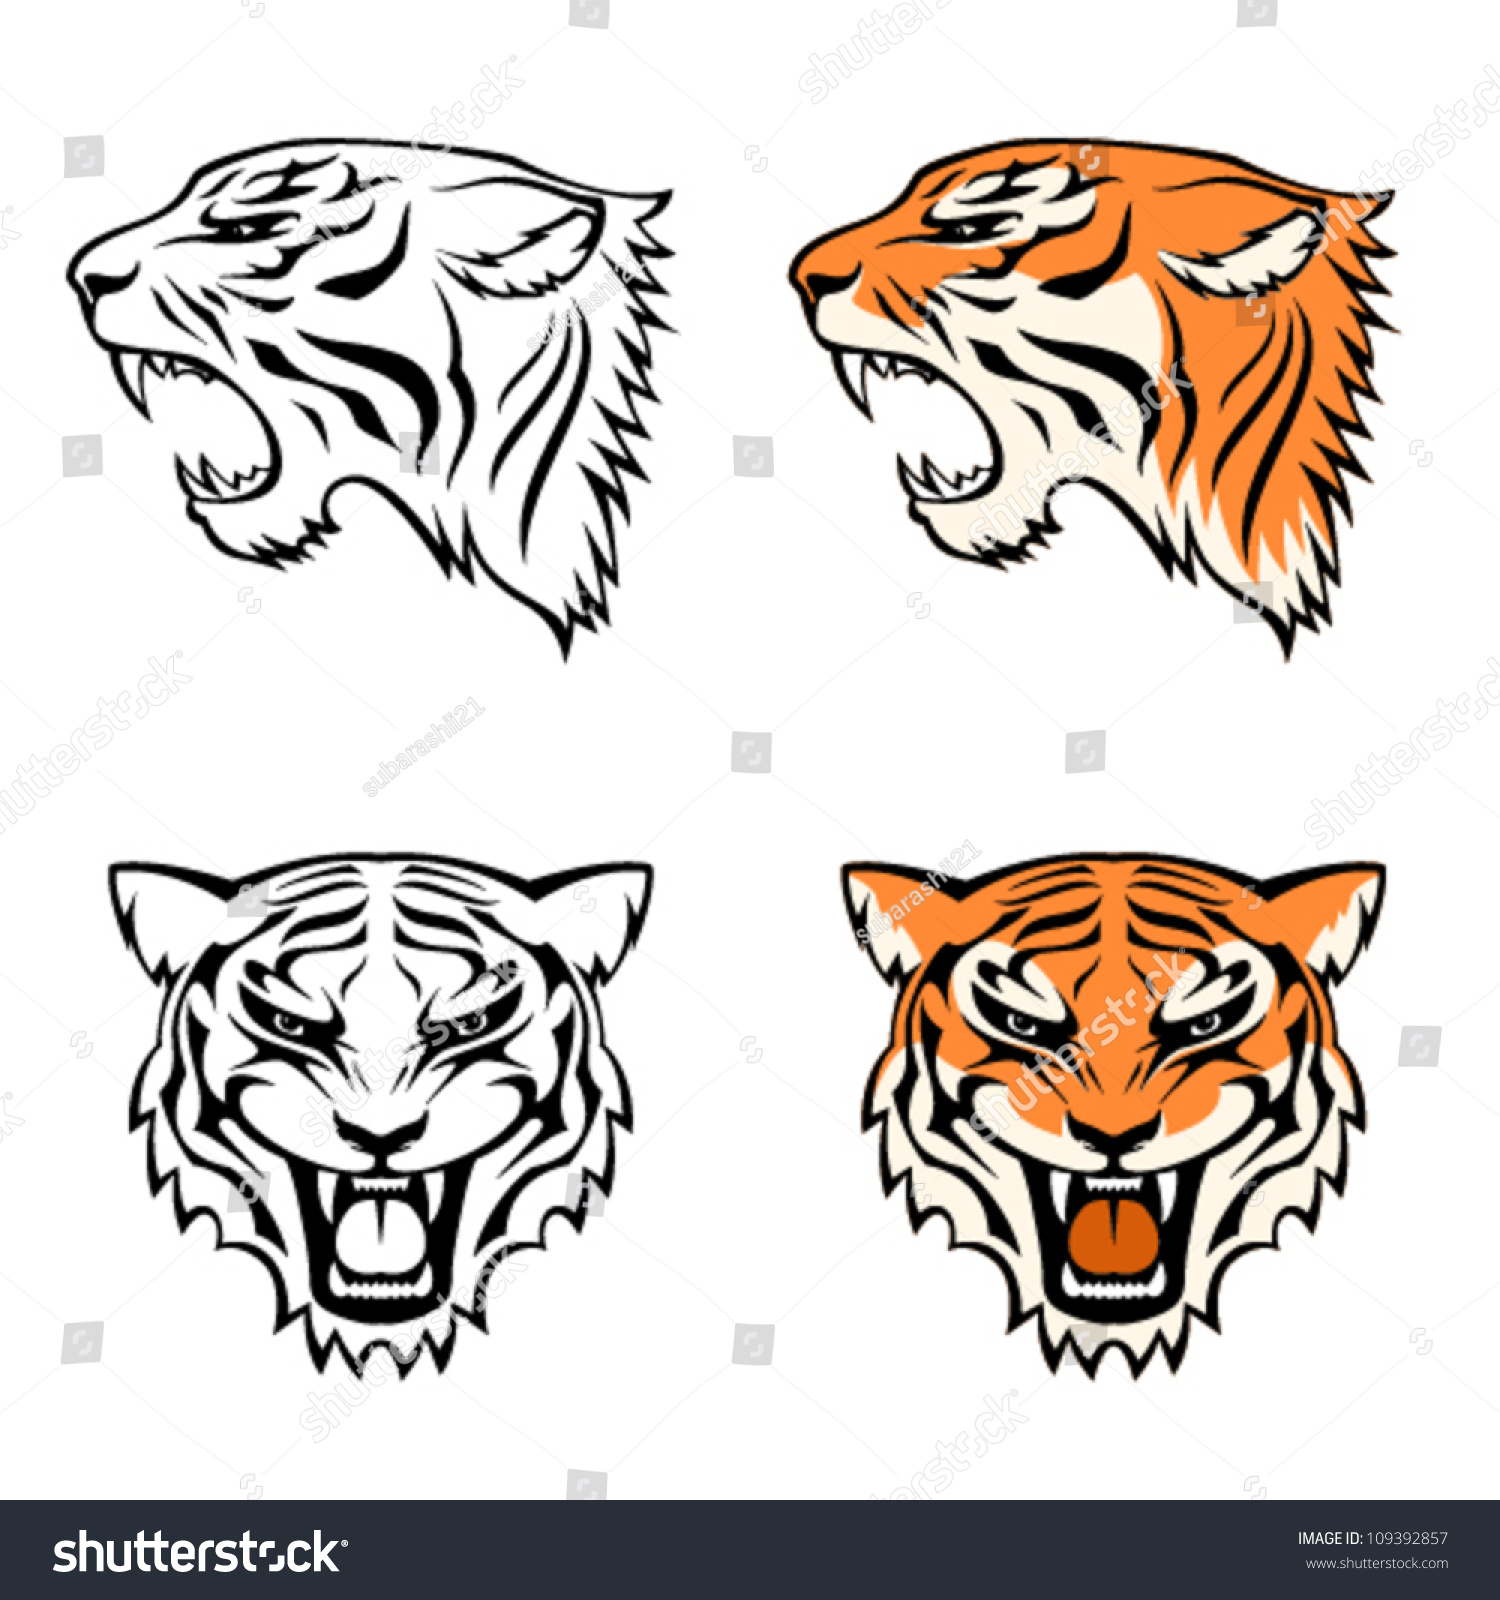 Line Drawing Tiger Face : Simple line illustrations tiger head profile stock vector